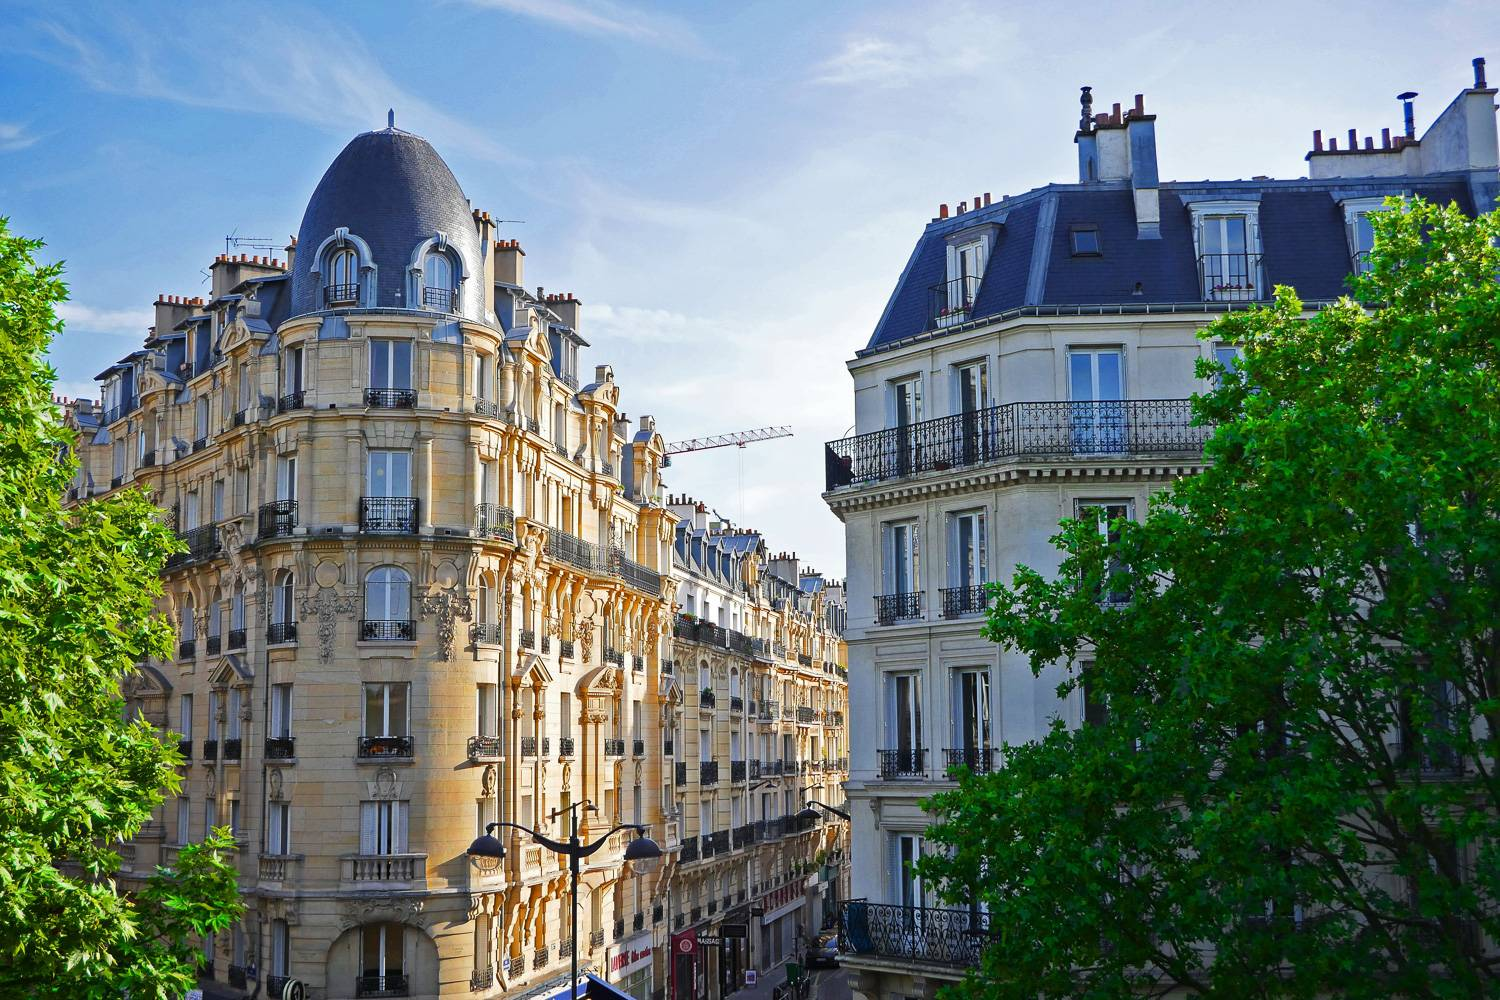 Image of Haussmannian rooftops in Paris surrounded by trees.